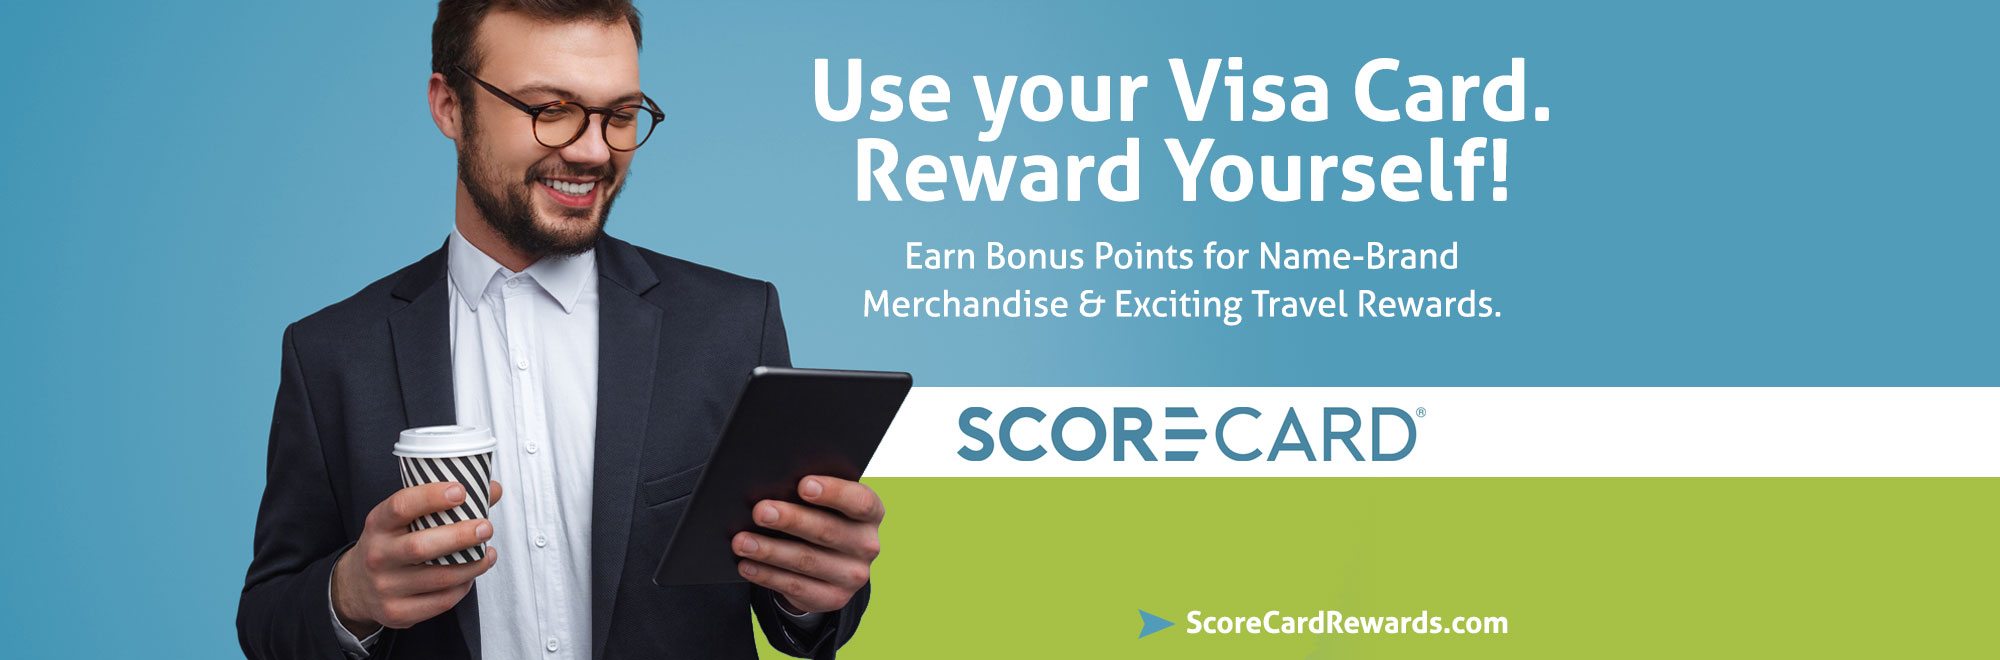 use your visa card. Reward yourself with Scorecard Rewards